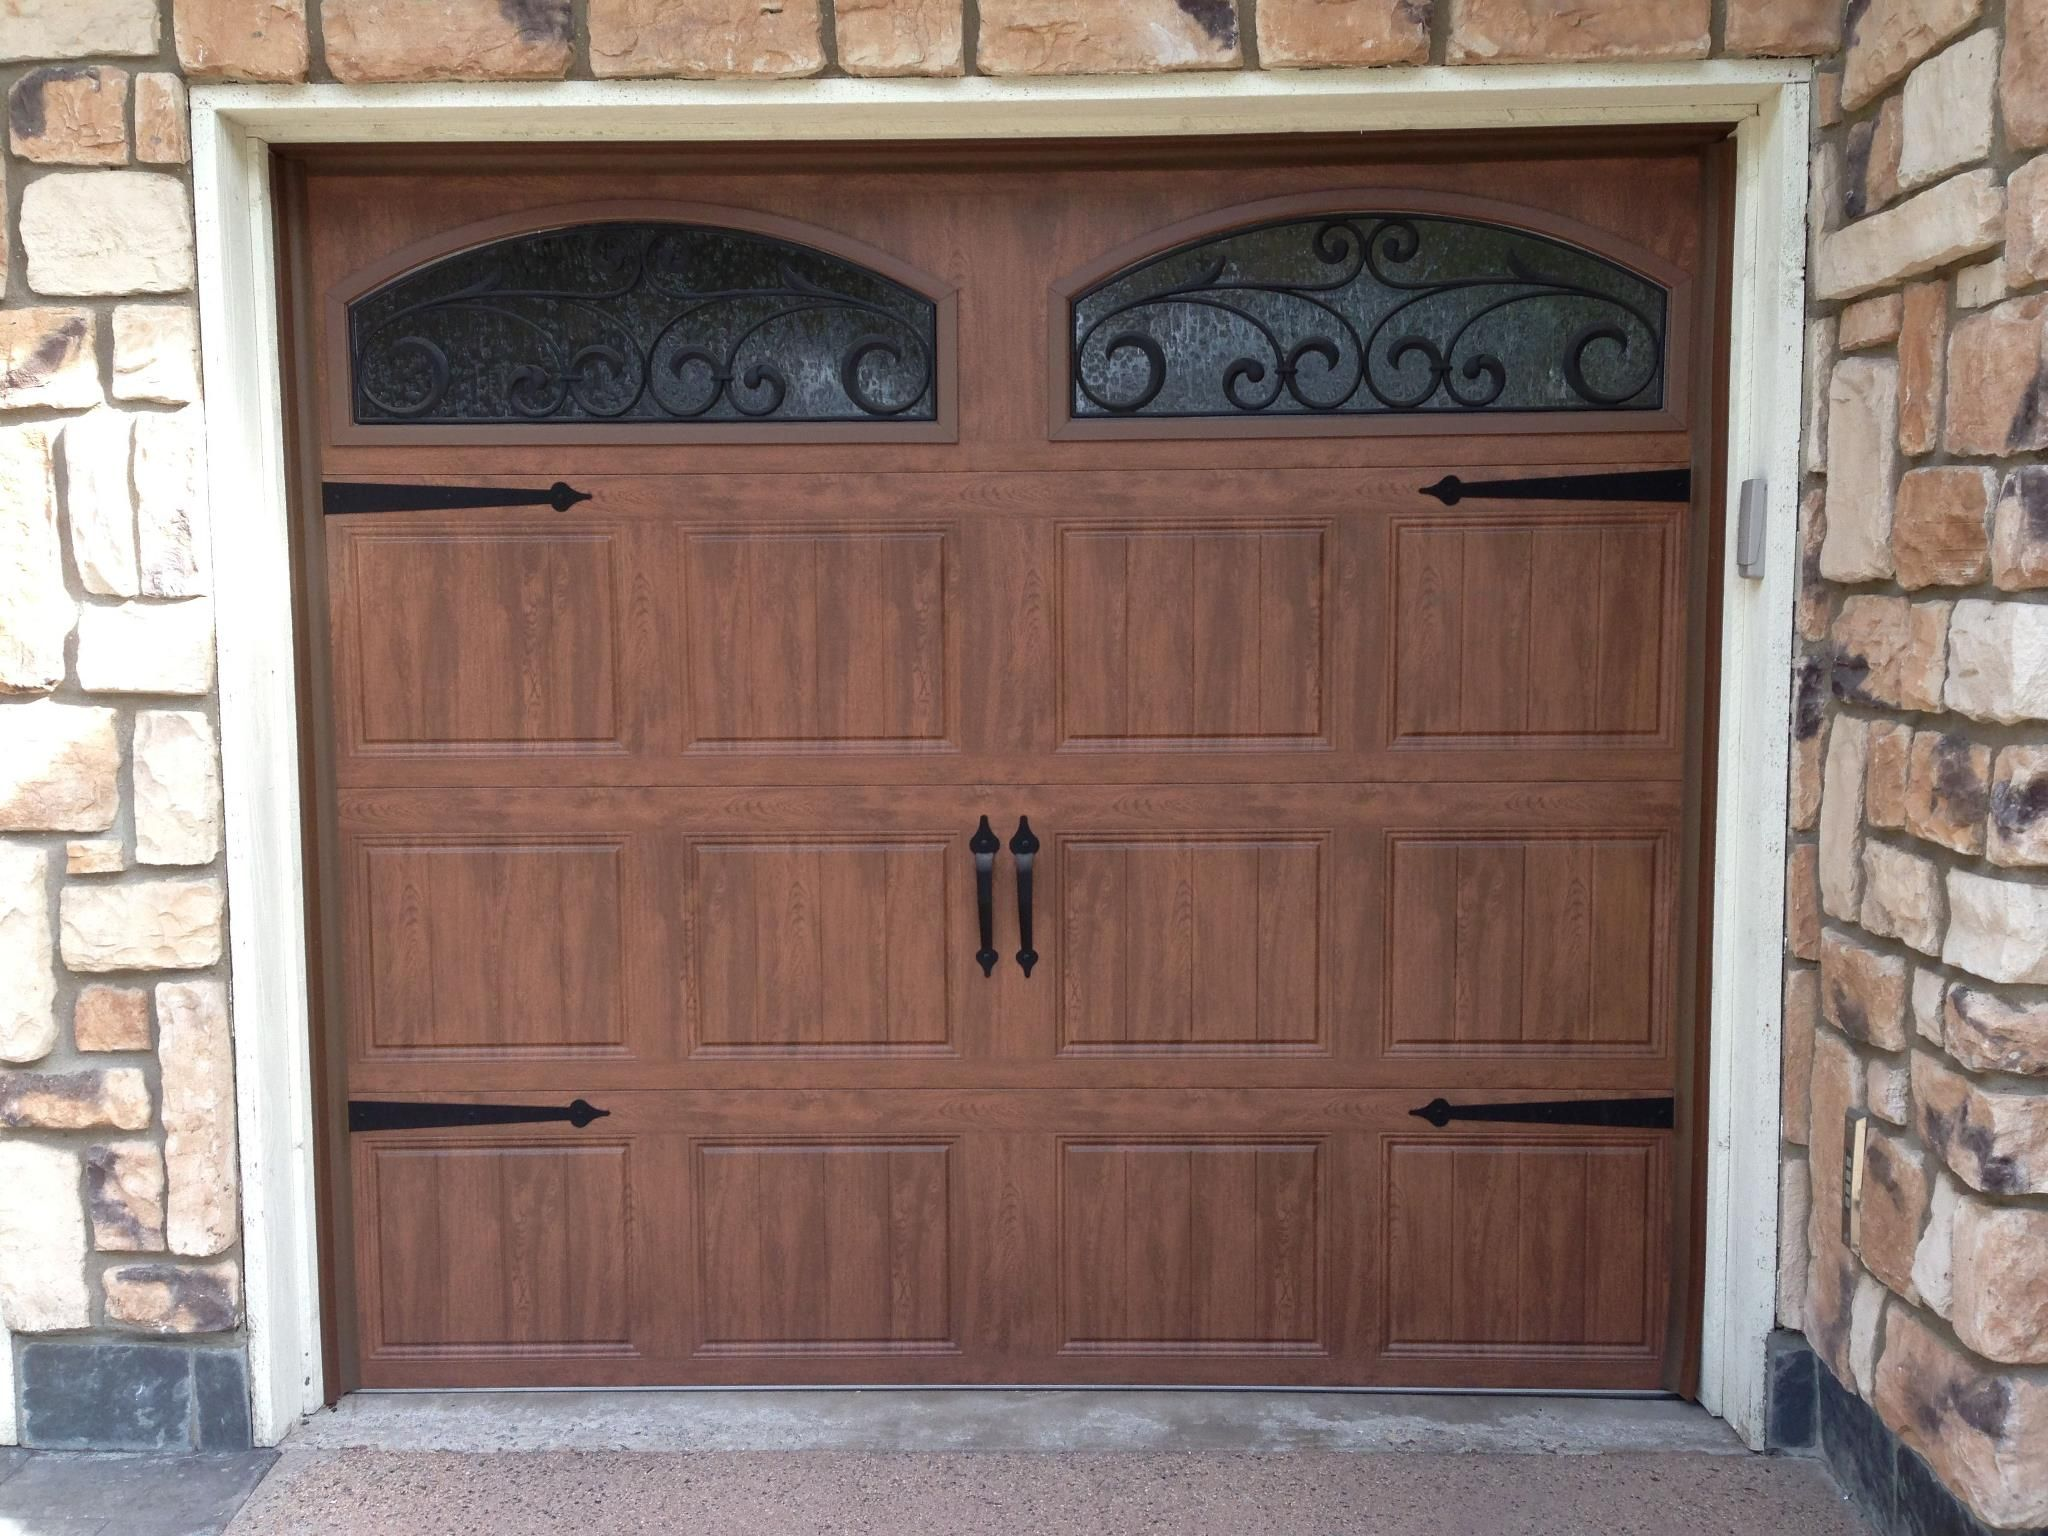 Faux wood painted garage doors - Clopay Gallery Collection Steel Garage Door With Ultra Grain Faux Wood Finish Decorative Wrought